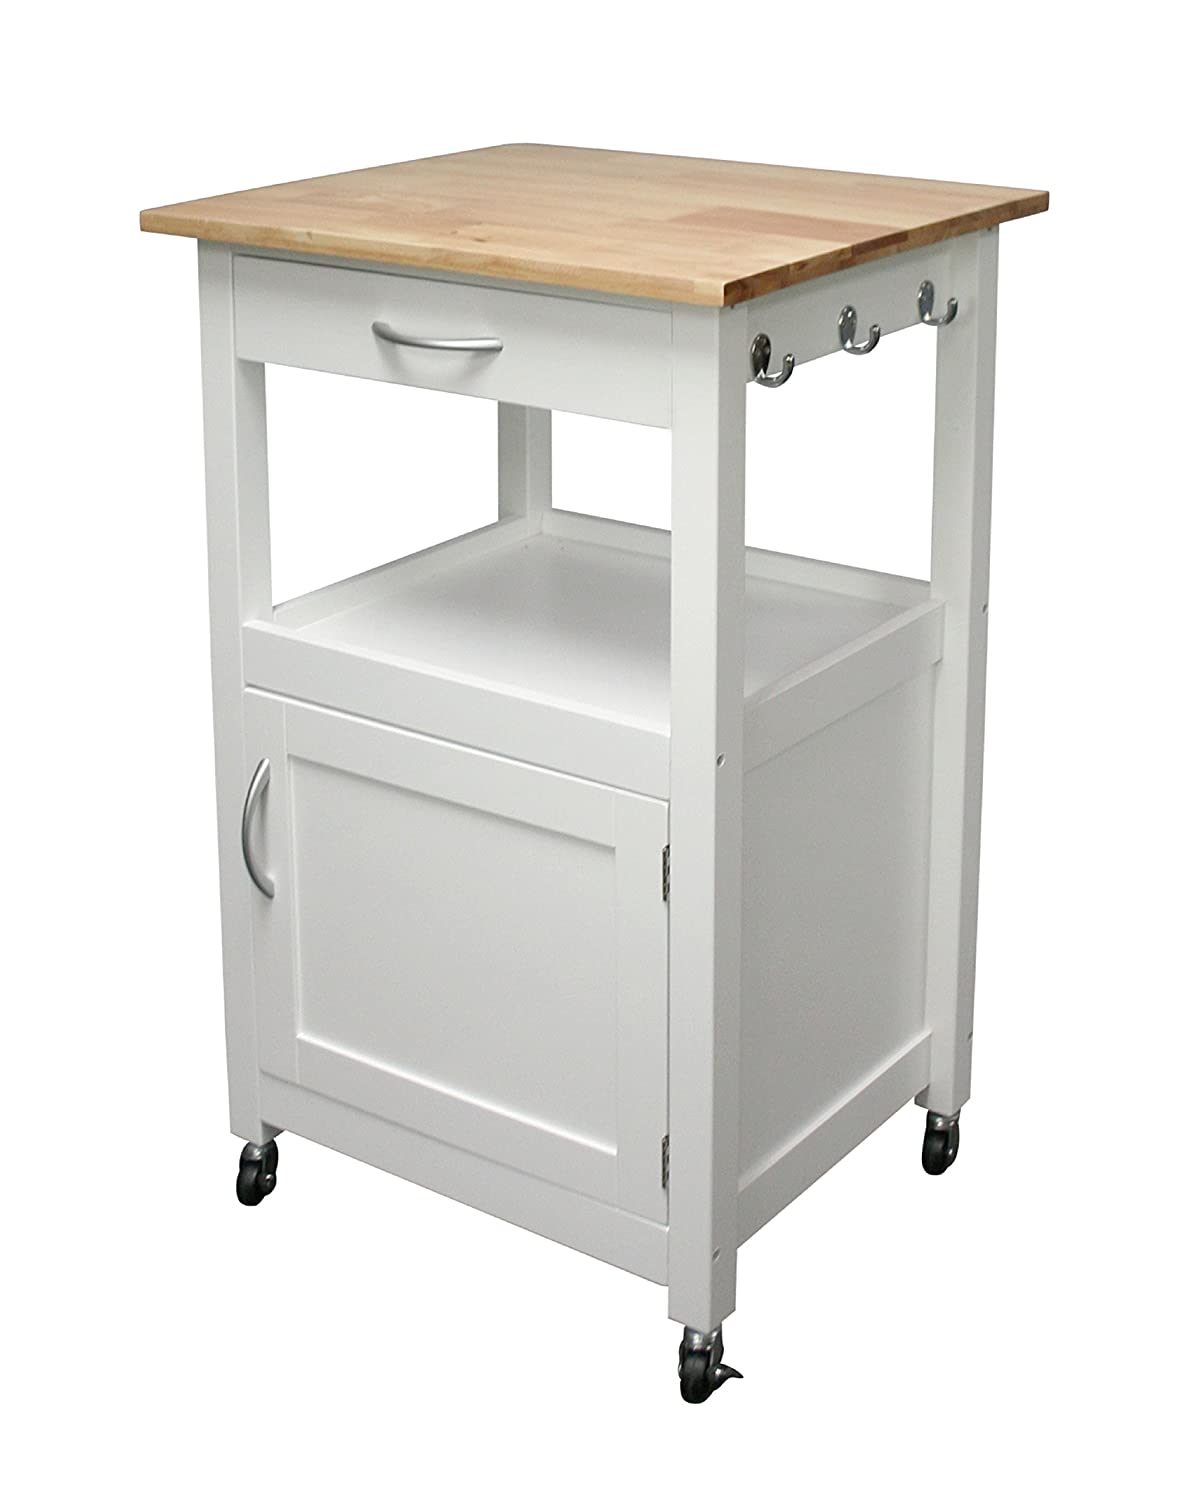 amazon com   ehemco kitchen island cart natural wood top with white base  white    kitchen islands  u0026 carts amazon com   ehemco kitchen island cart natural wood top with      rh   amazon com